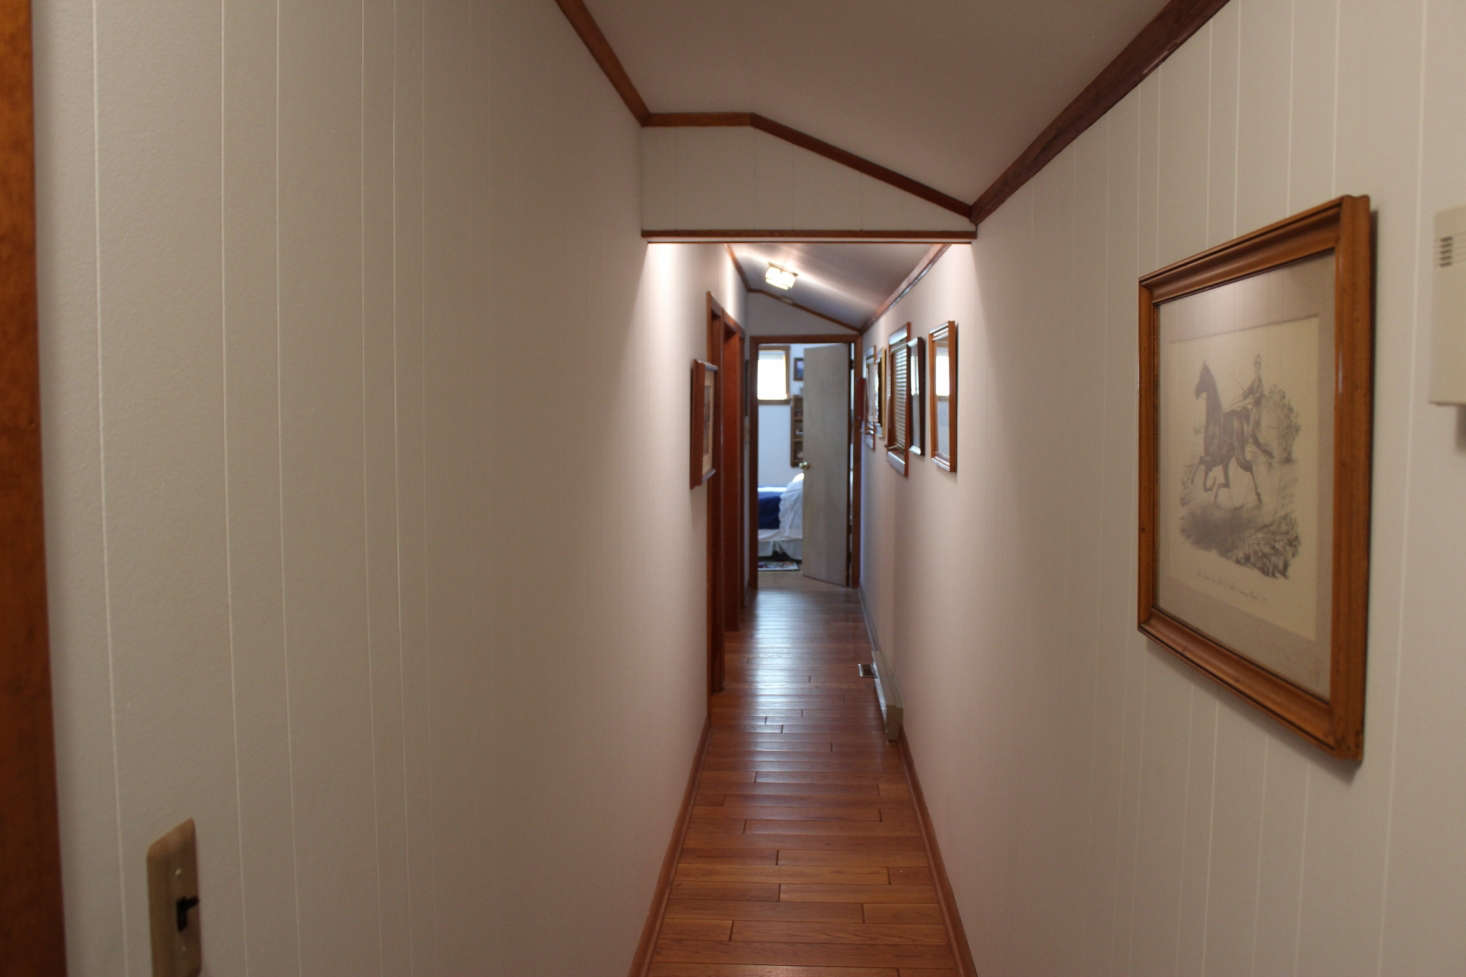 The hallway, pre-paint and concealed storage.